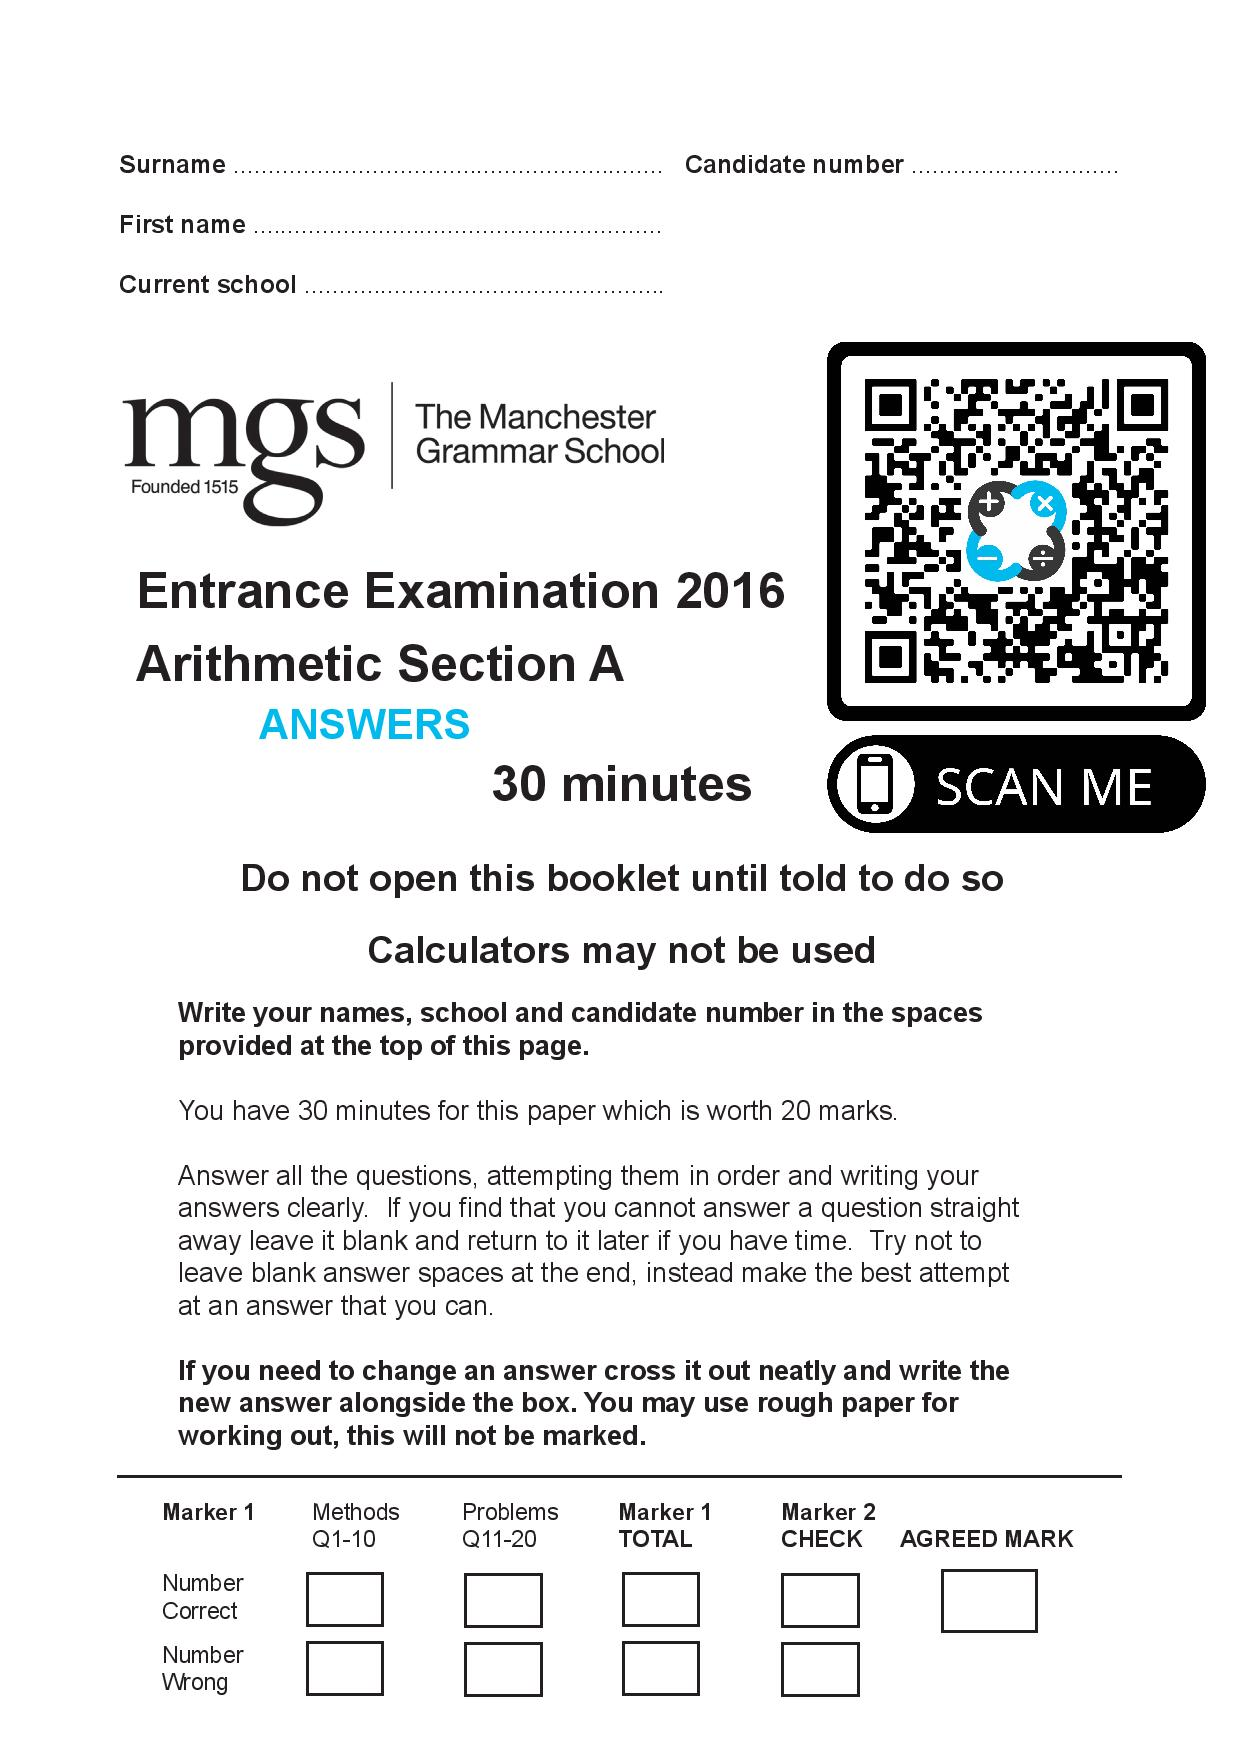 The Manchester Grammar School Entrance Examination 2016 Arithmetic Section A Answer Paper page 001